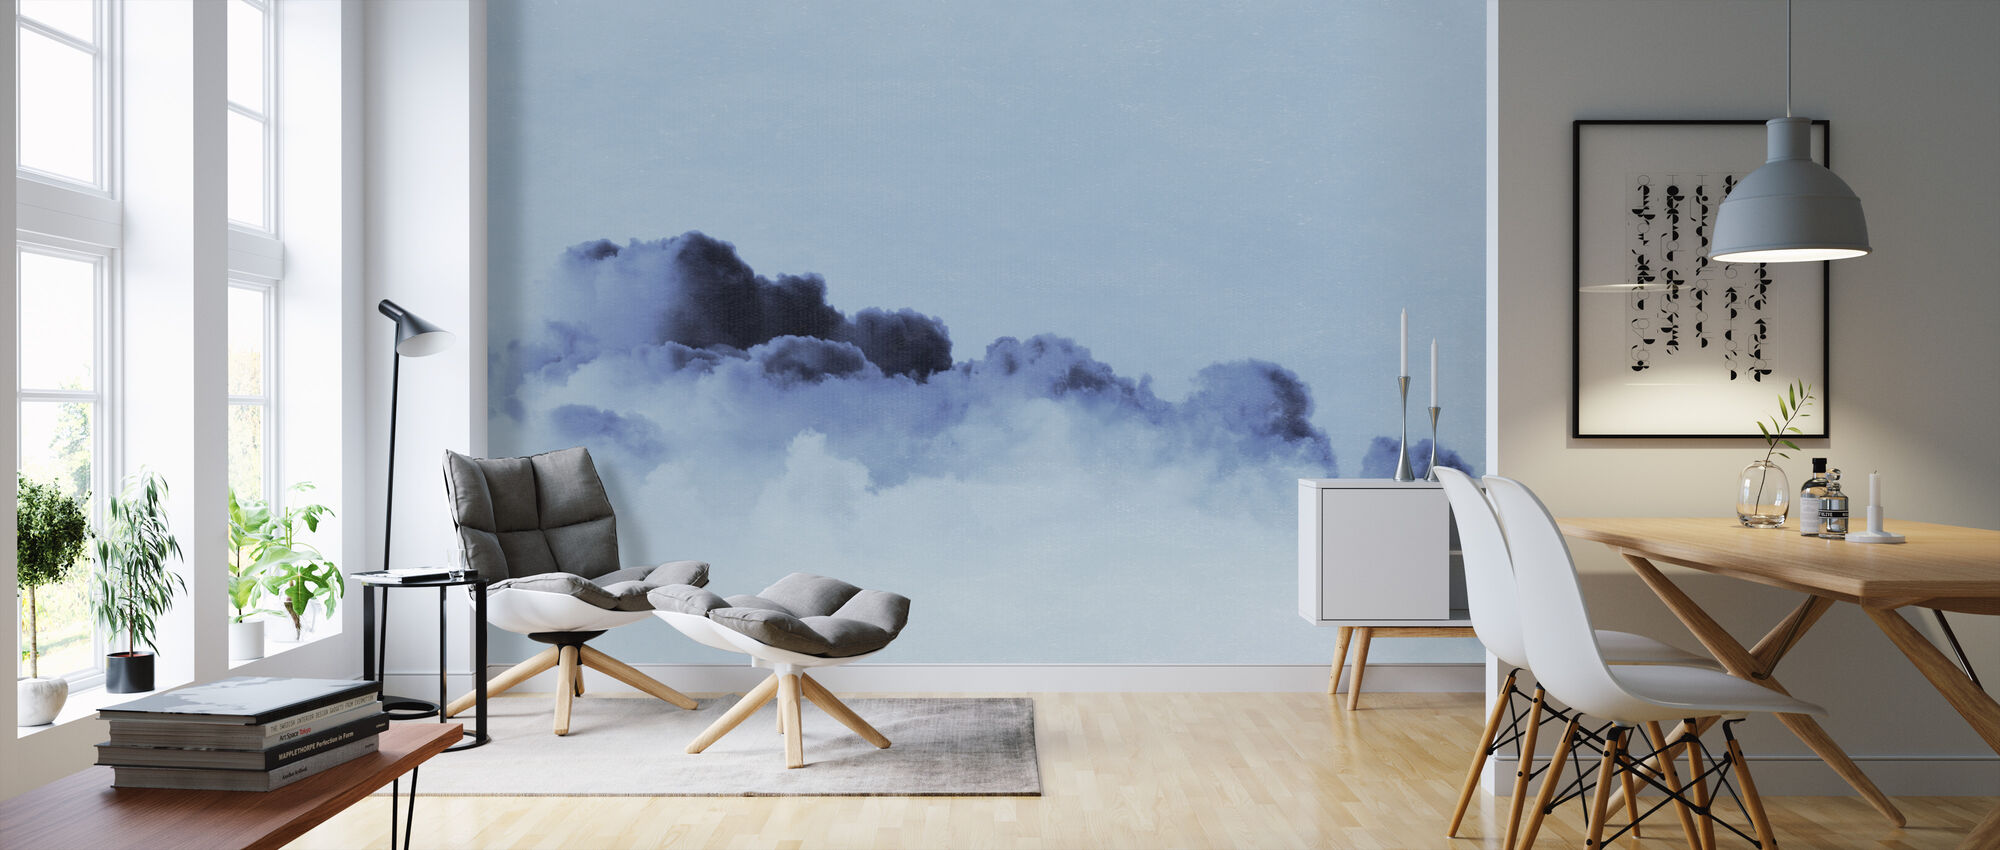 Gradient Cloud Inky Filter - Wallpaper - Living Room